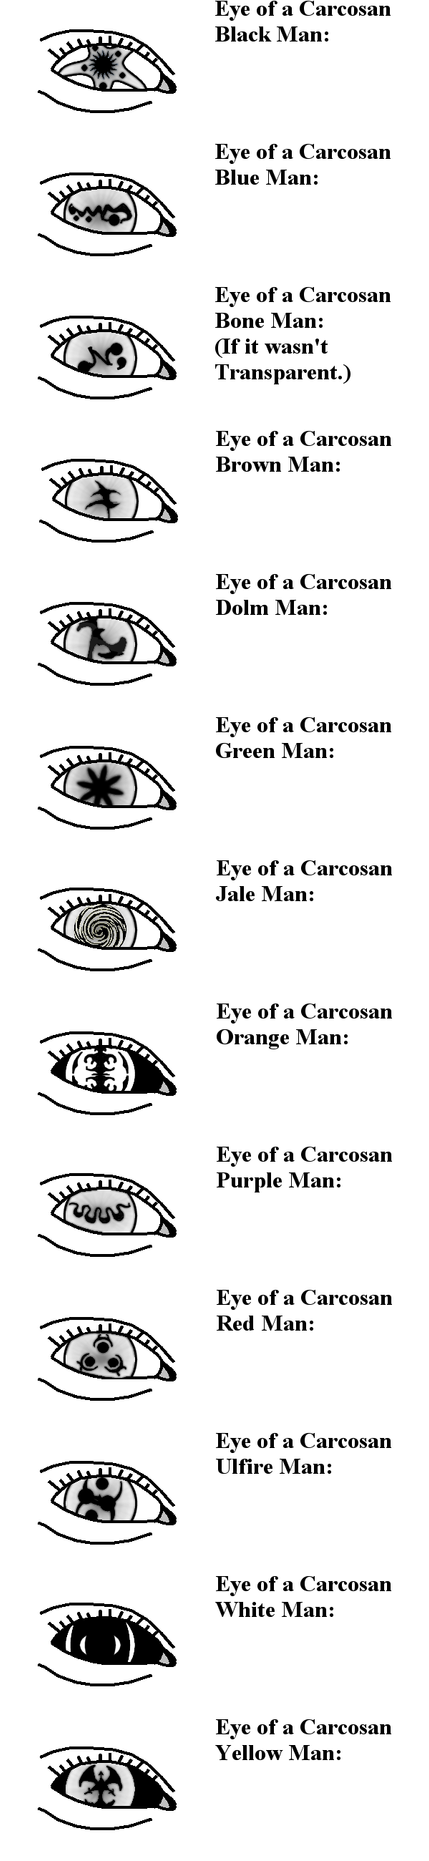 Eyes of the Carcosans by Burning-Torso